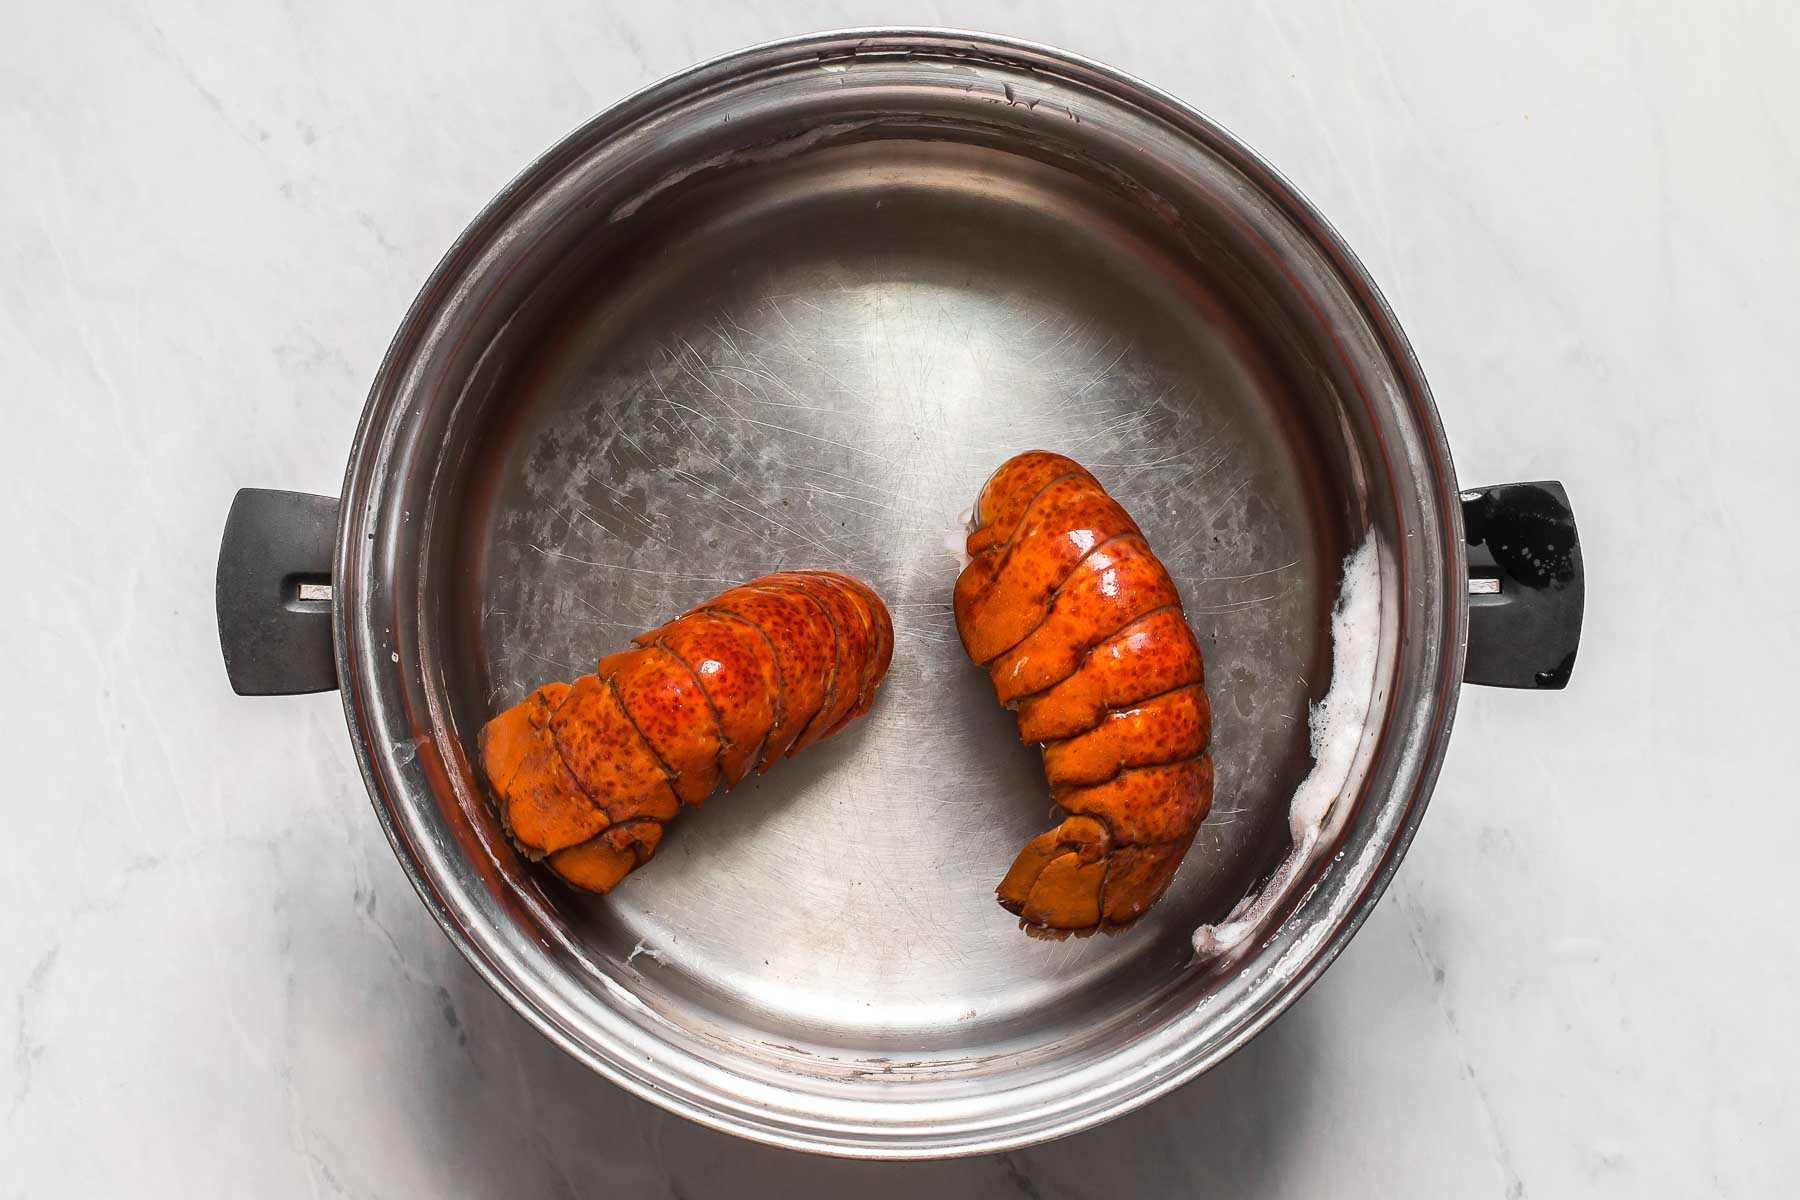 Cooked lobster tails in water pan.